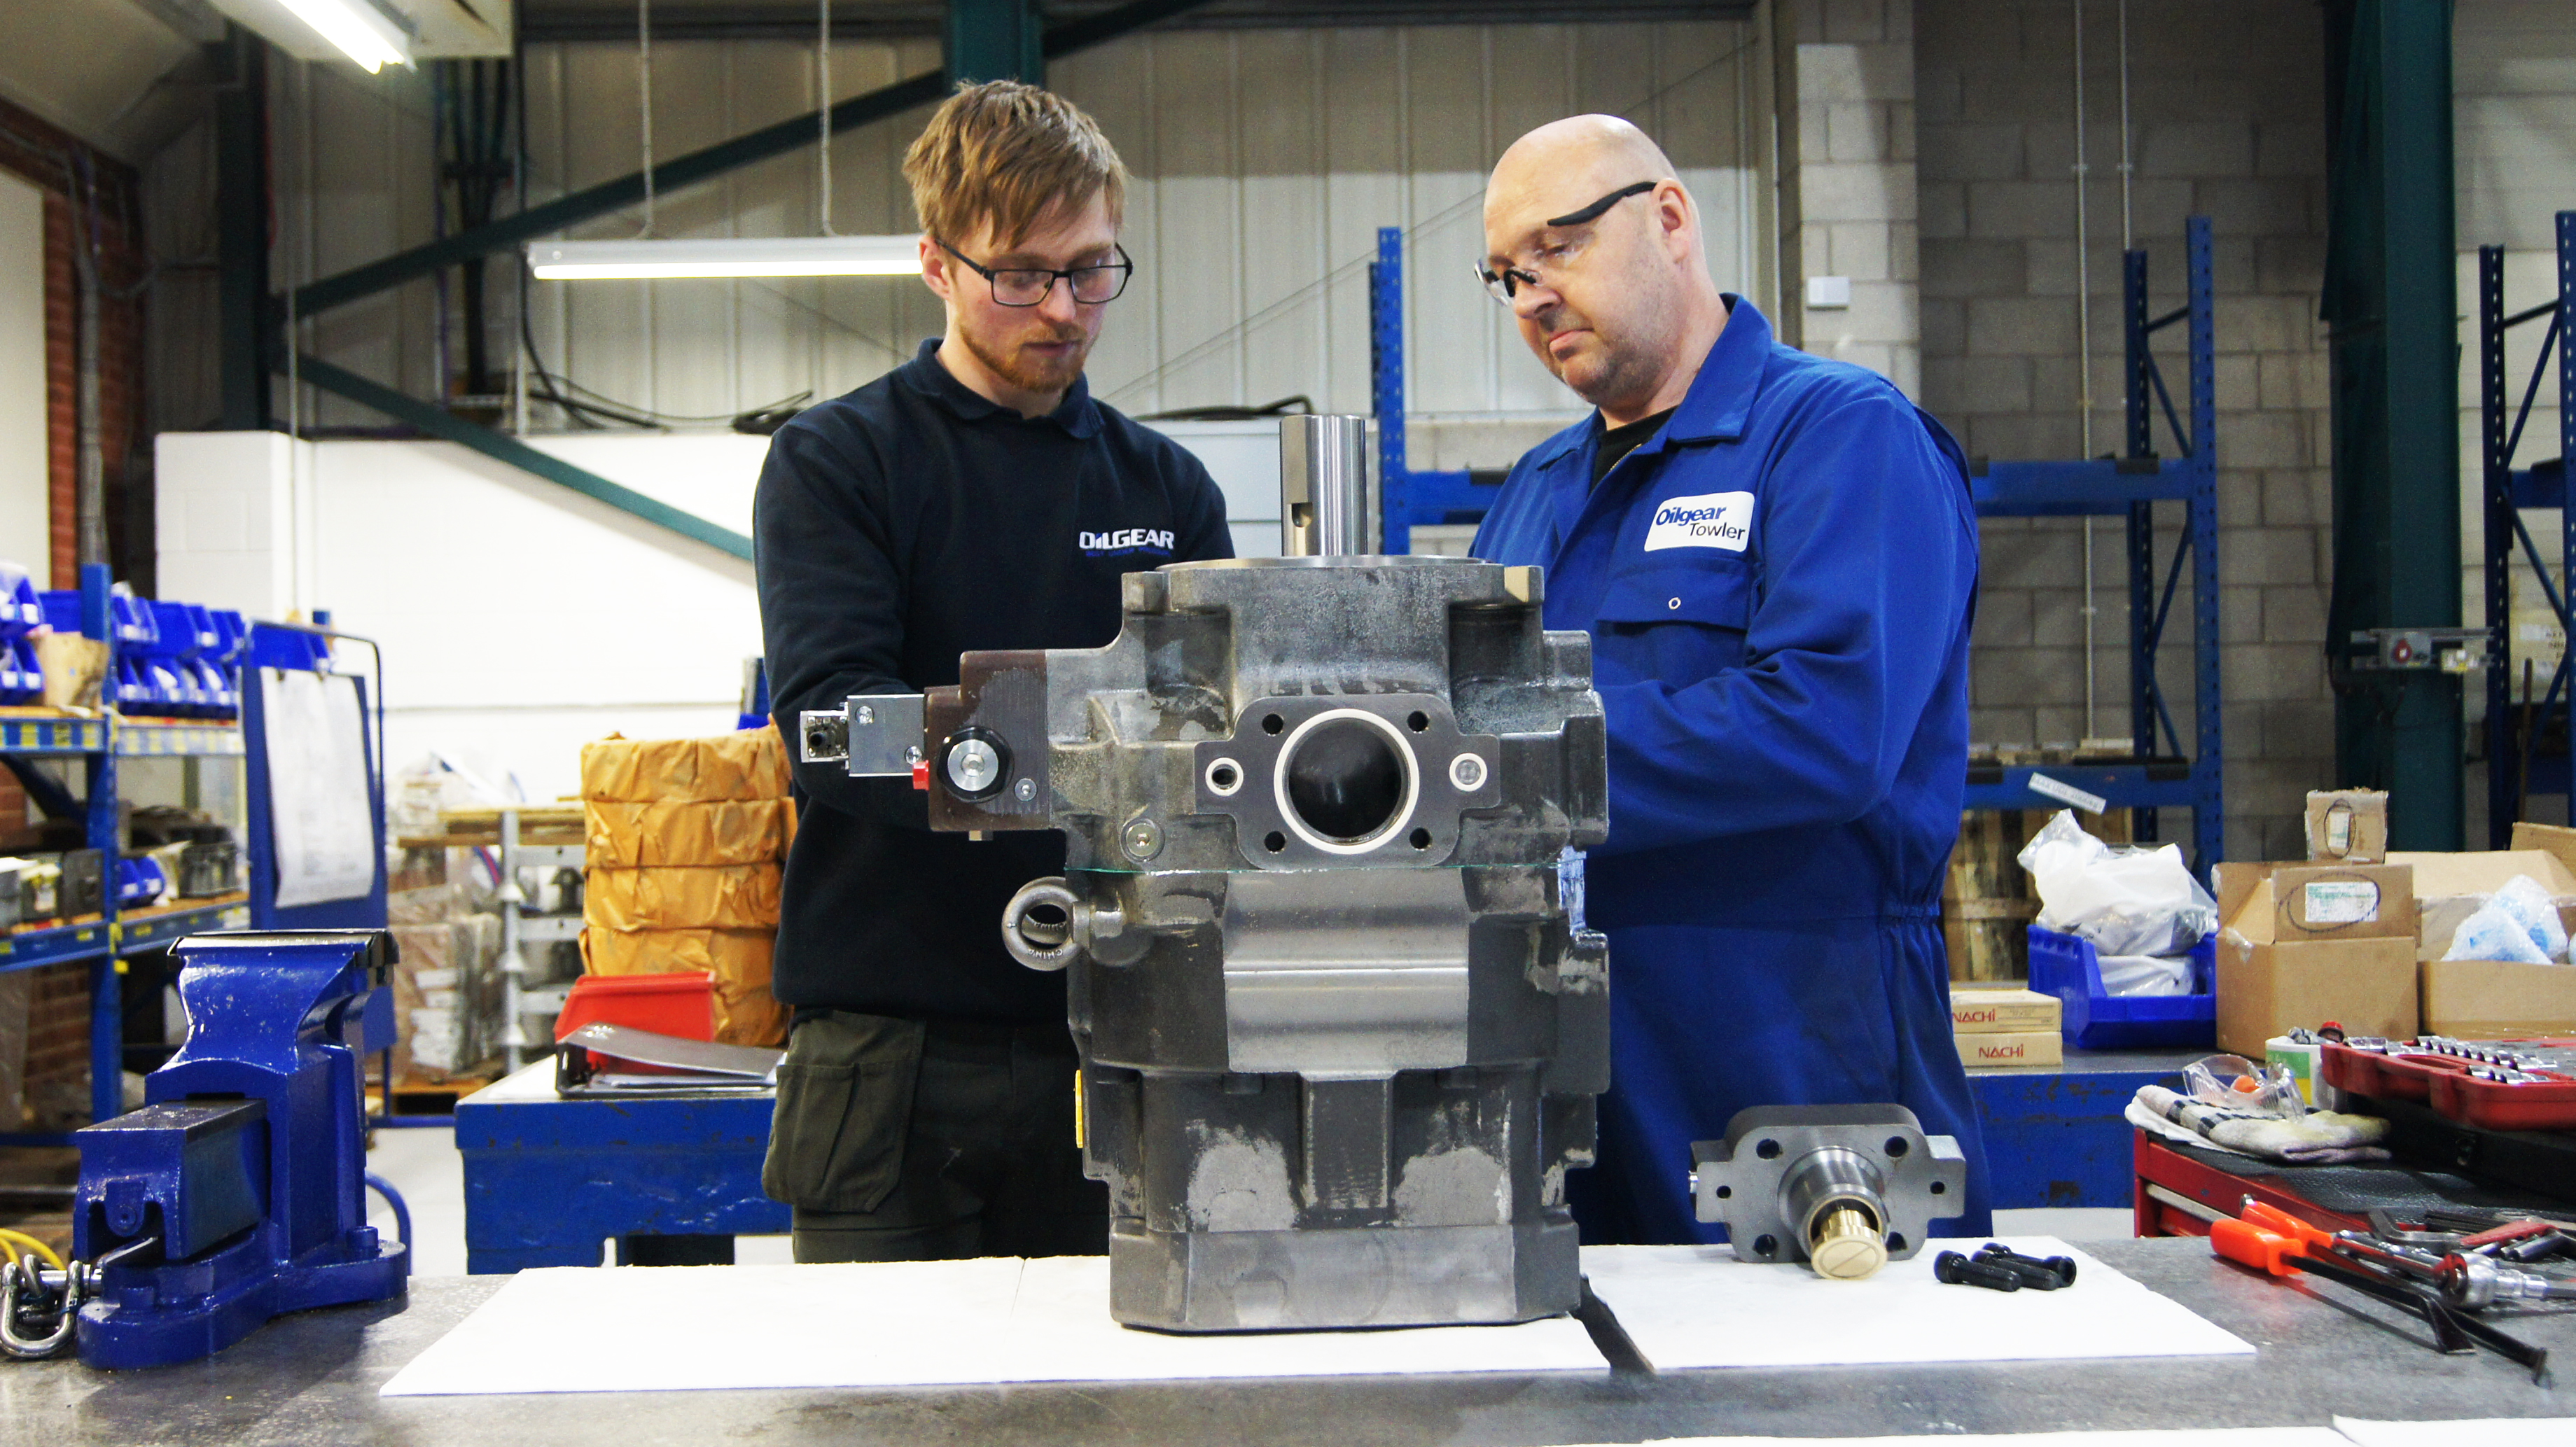 Finding the right hydraulic maintenance partner